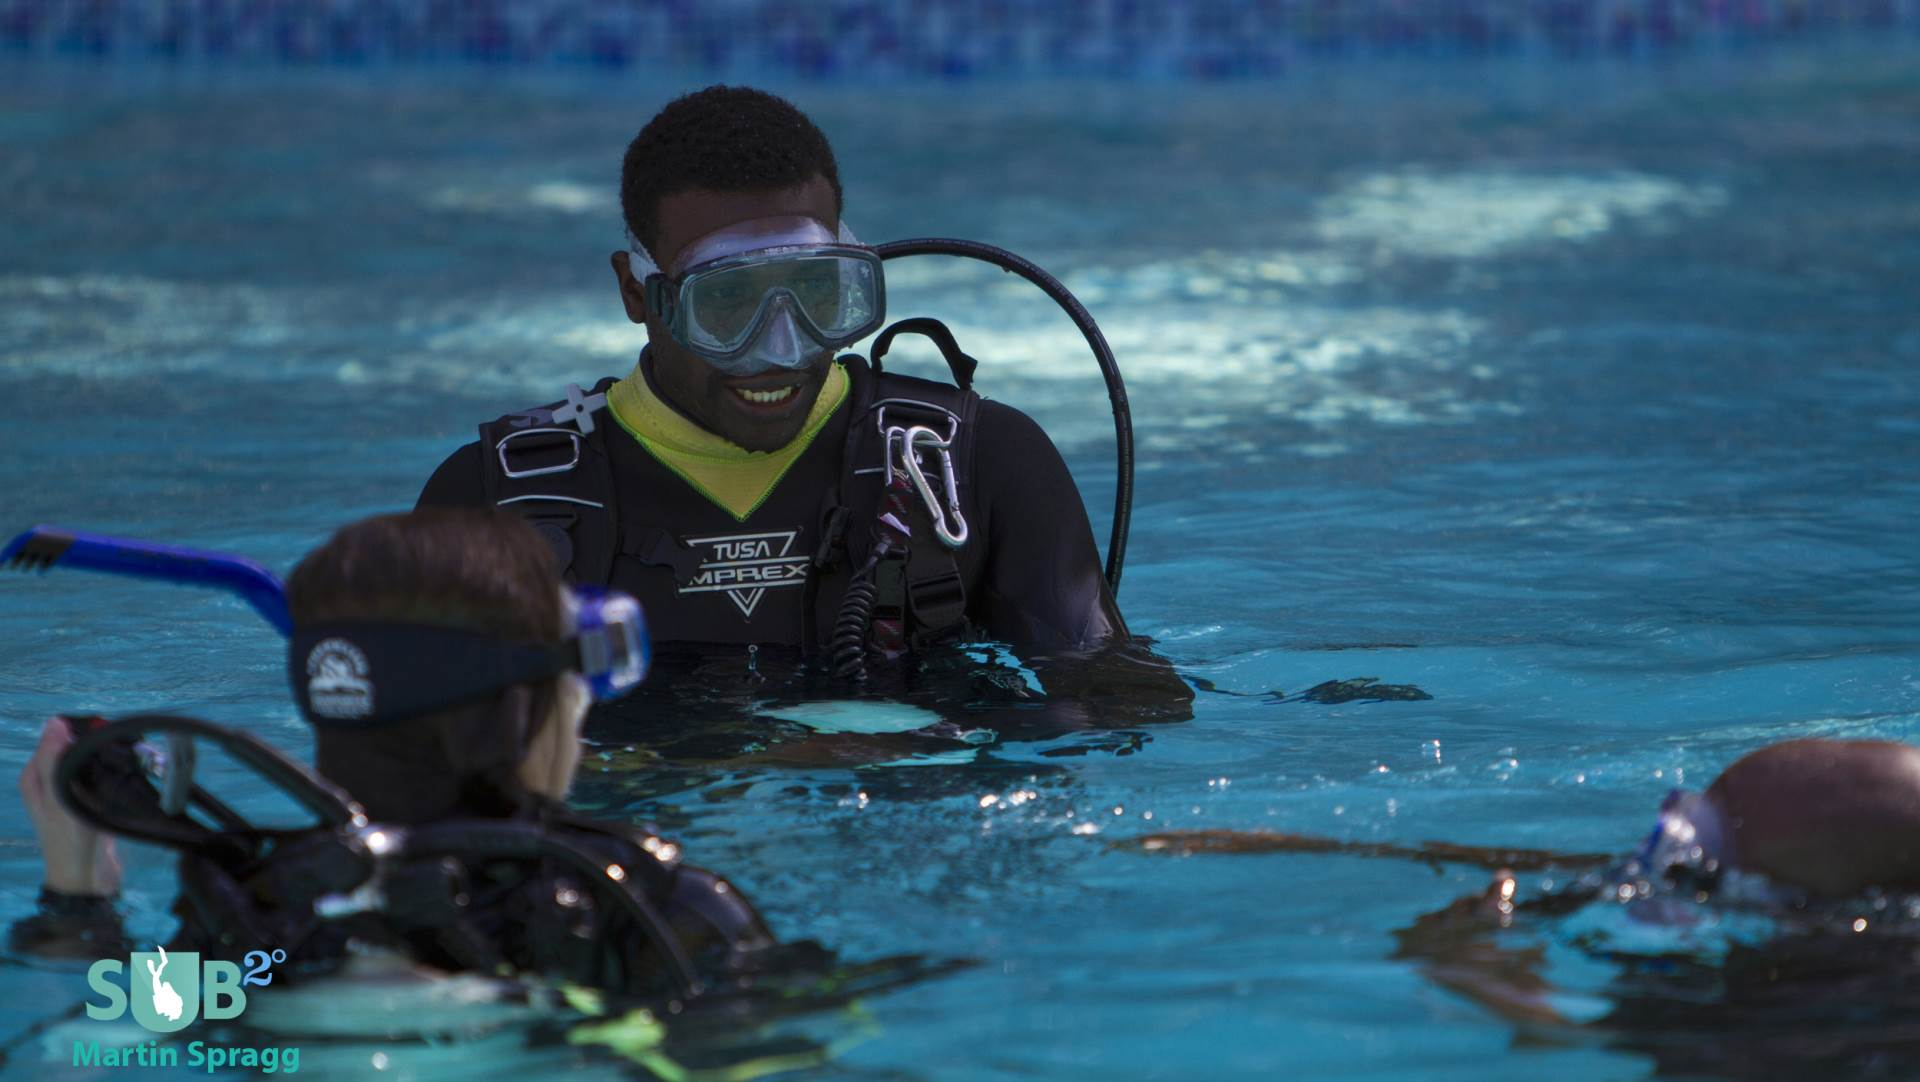 Don't let pre-dive nerves get the better of you. With practice and supervision, your confidence will grow and you can succeed!